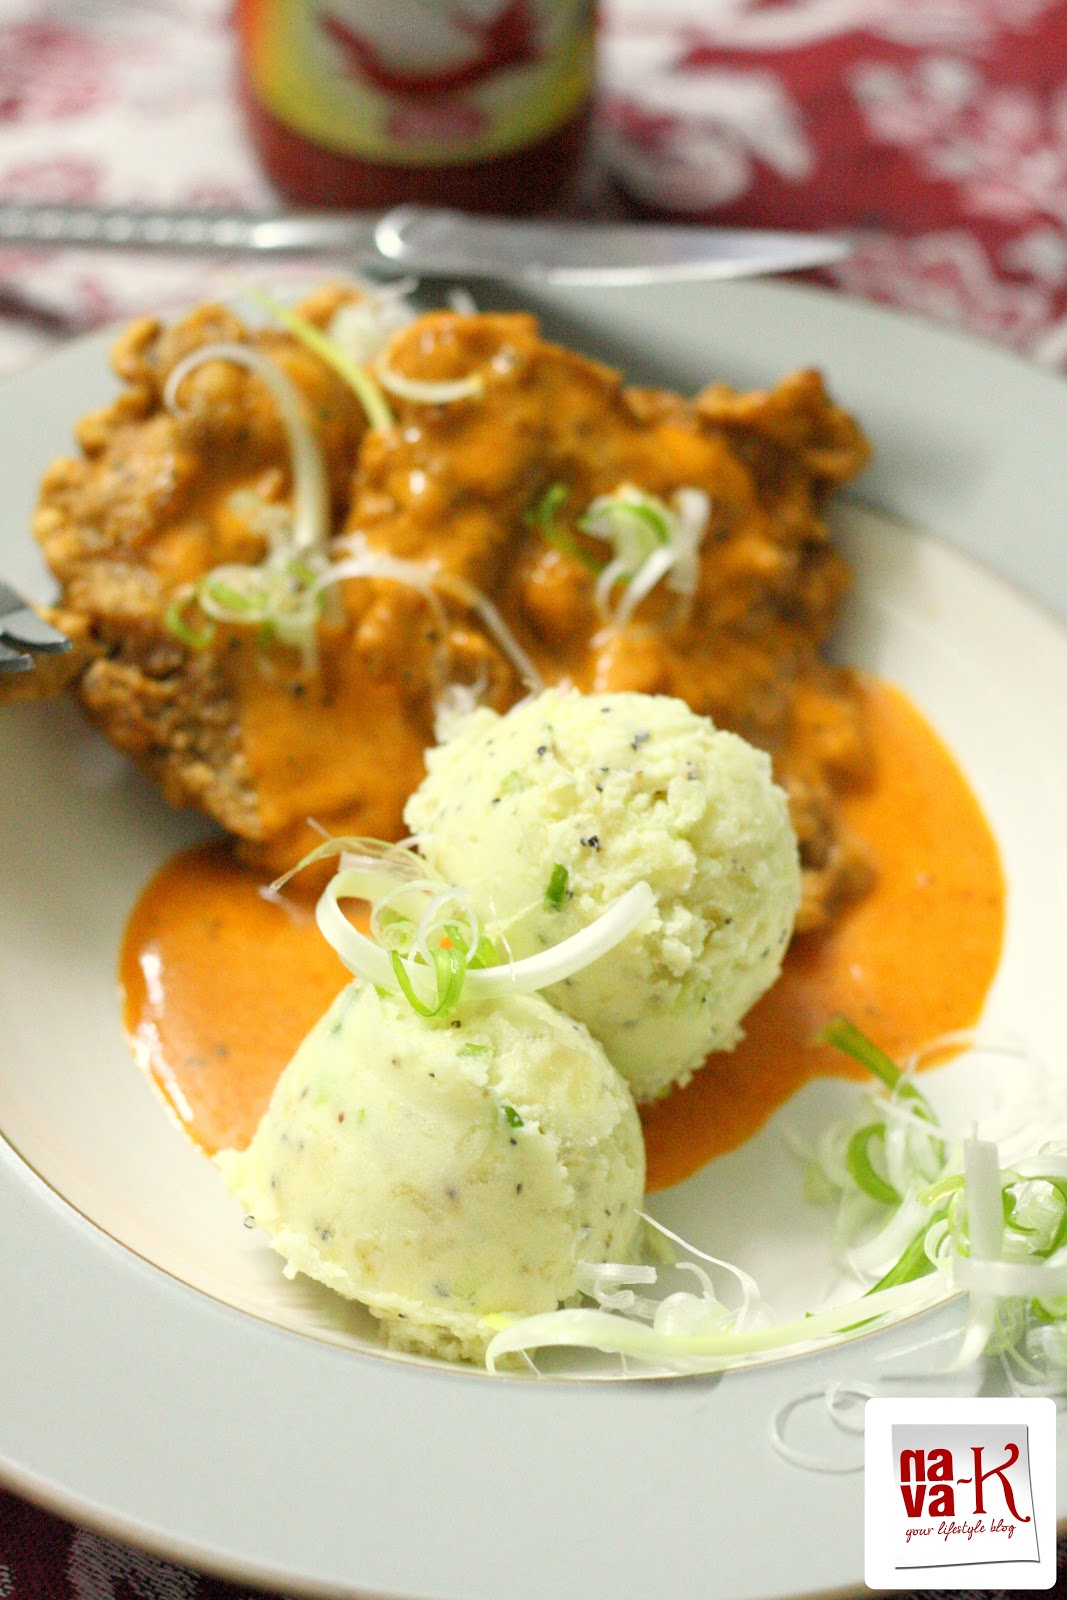 Nava k spicy chicken chop with mashed potatoes not always once in a blue moon a different kind of meal or western meal makes an appearance on our dining table lemongrass chicken kebab jacket potato forumfinder Images